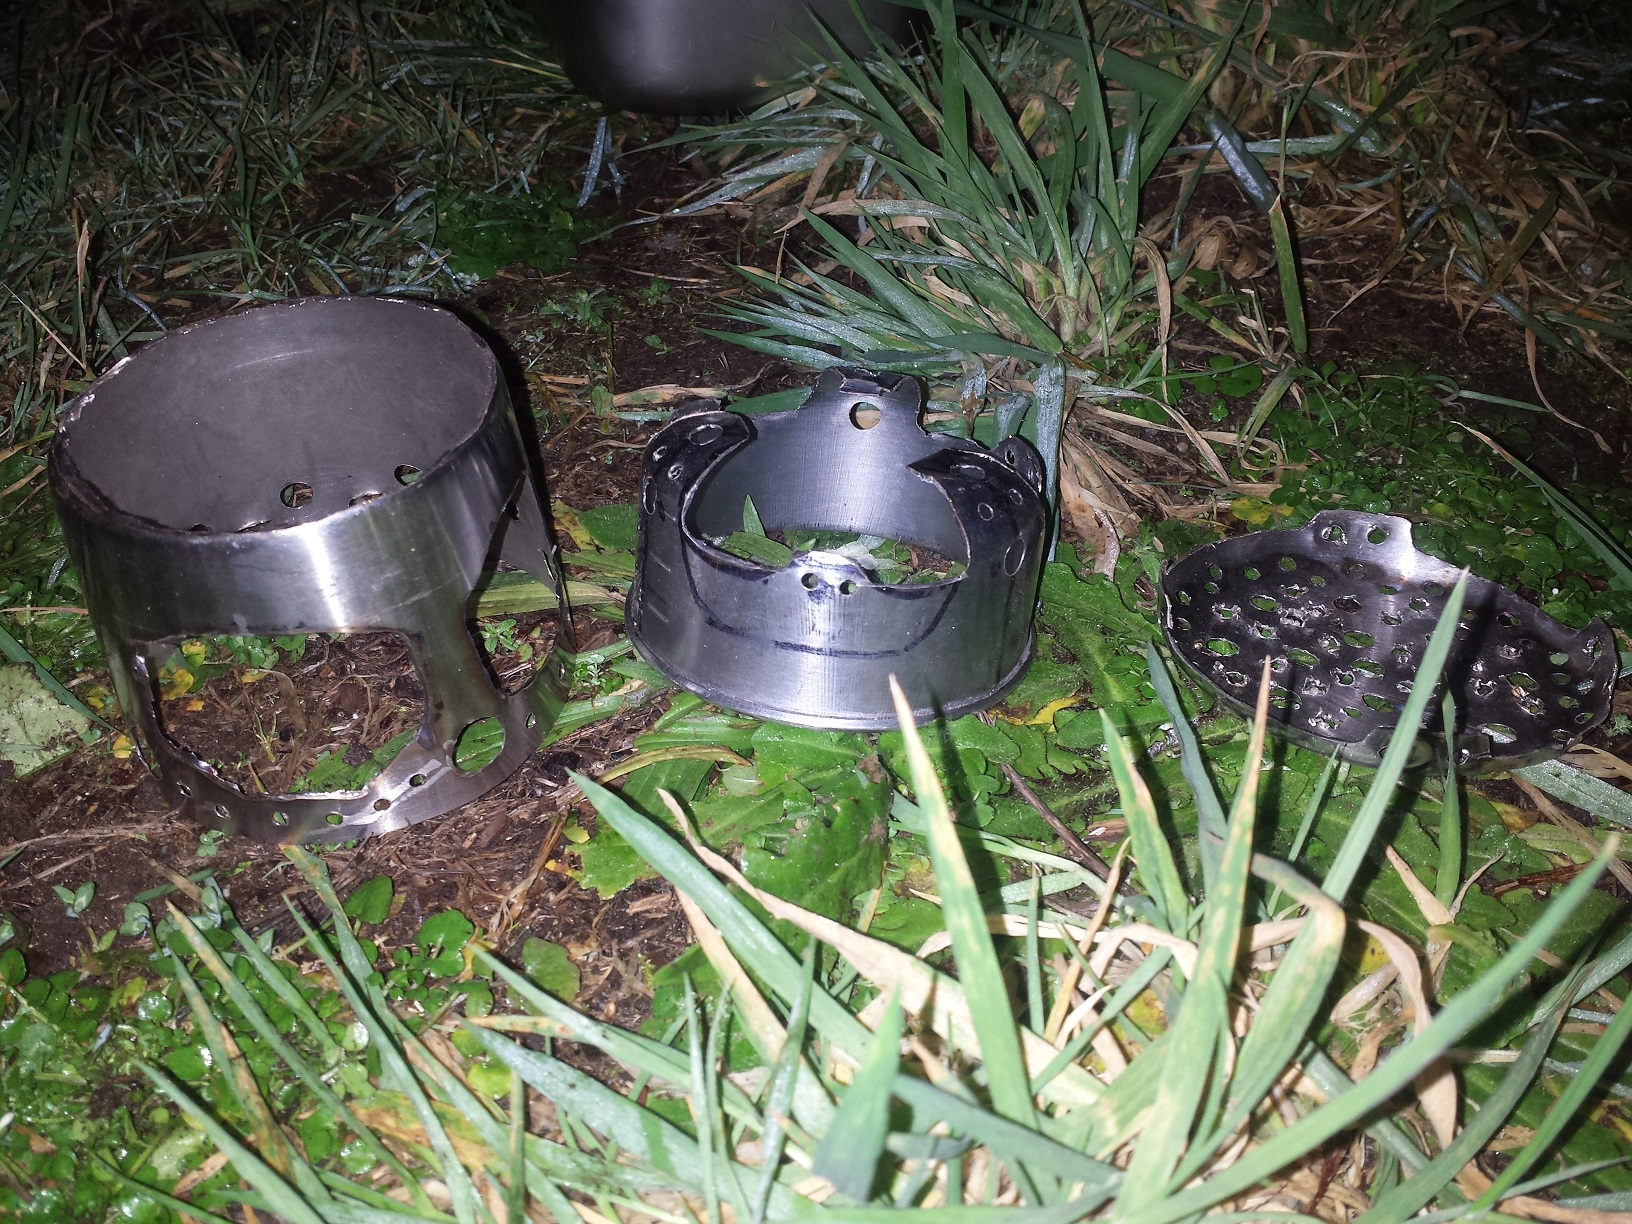 Micro Wood Burning Stove - Backpacking Light